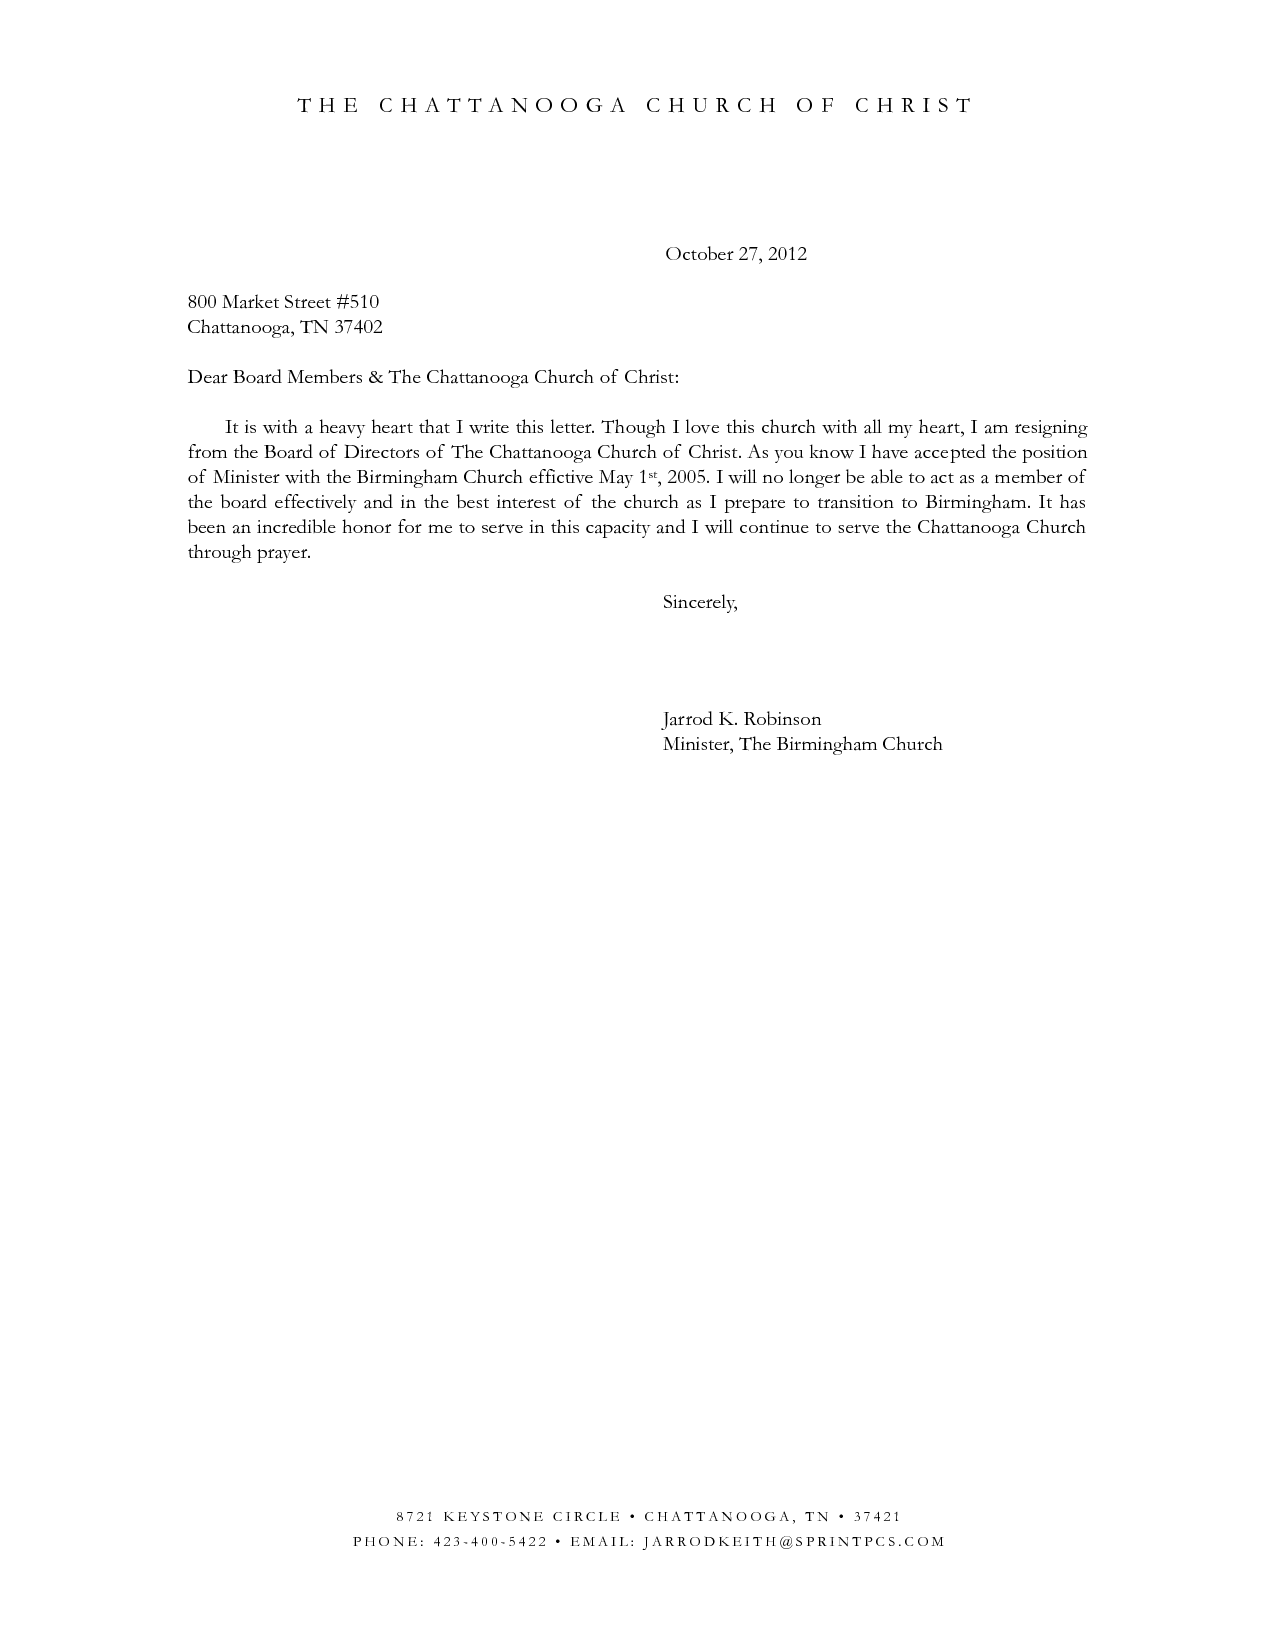 board of directors resignation letter template